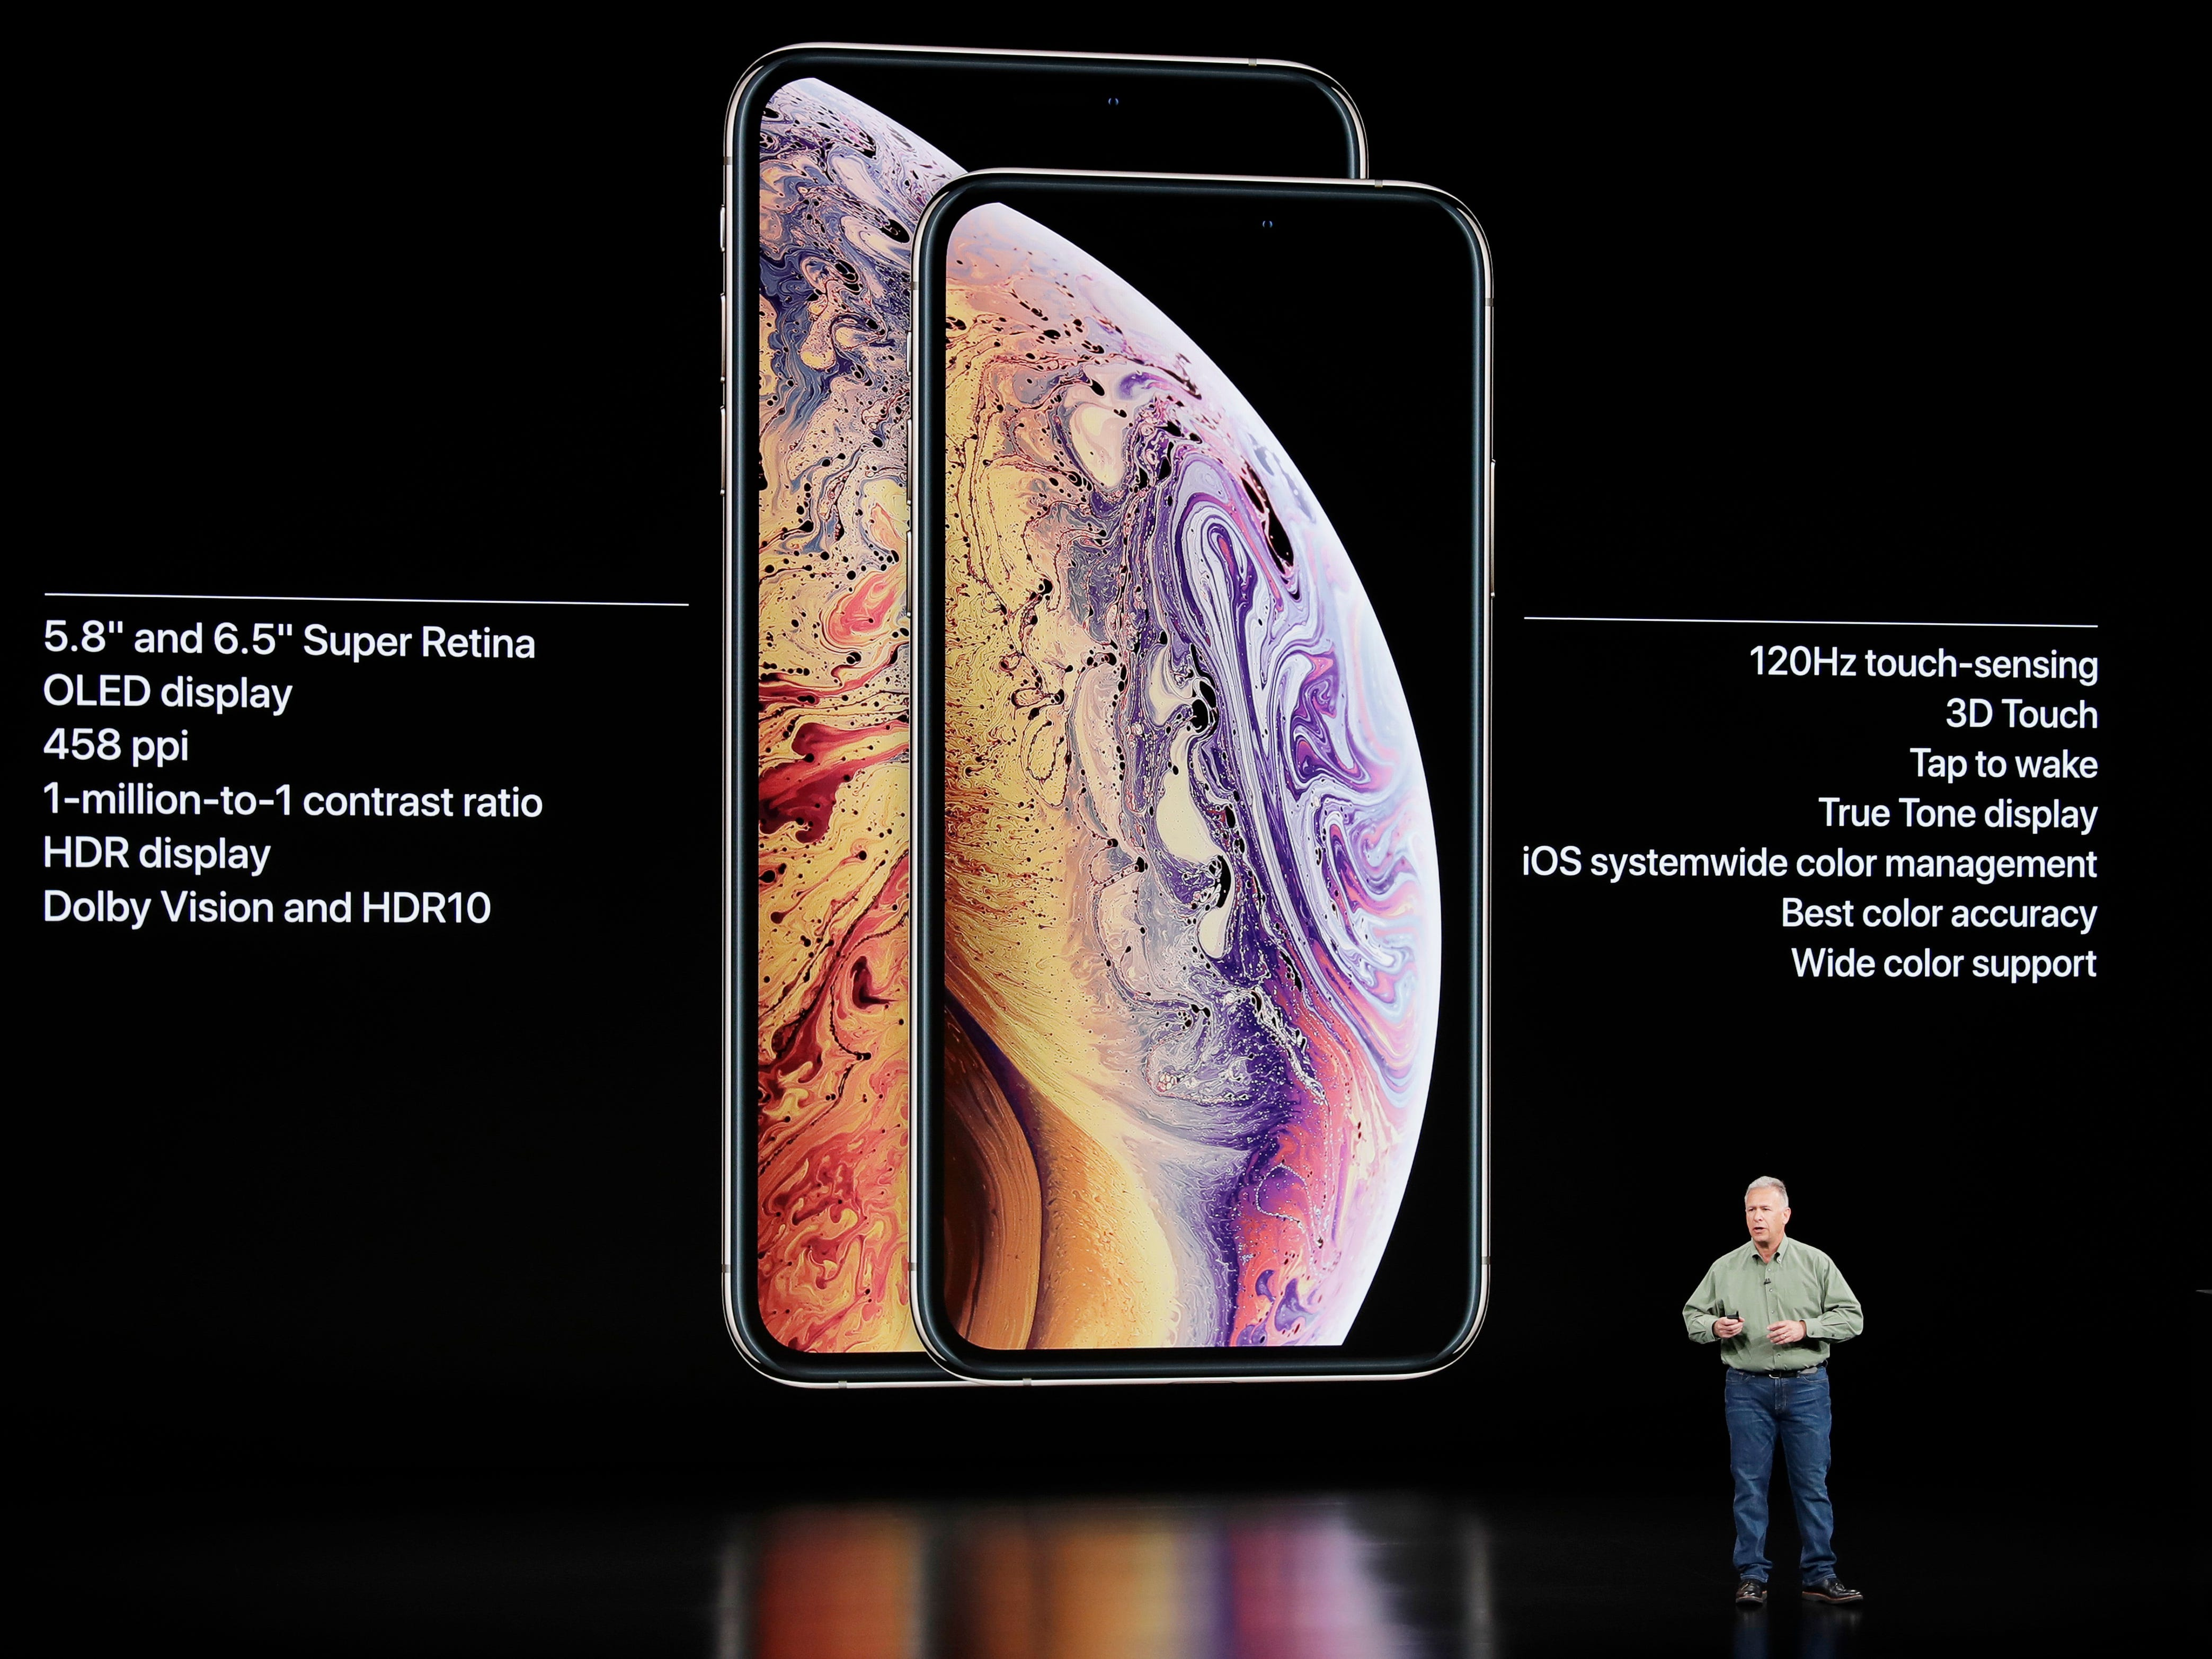 Phil Schiller, Apple's senior vice president of worldwide marketing, speaks about the Apple iPhone XS and Apple iPhone XS Max at the Steve Jobs Theater during an event to announce new Apple products Wednesday, Sept. 12, 2018, in Cupertino, Calif.